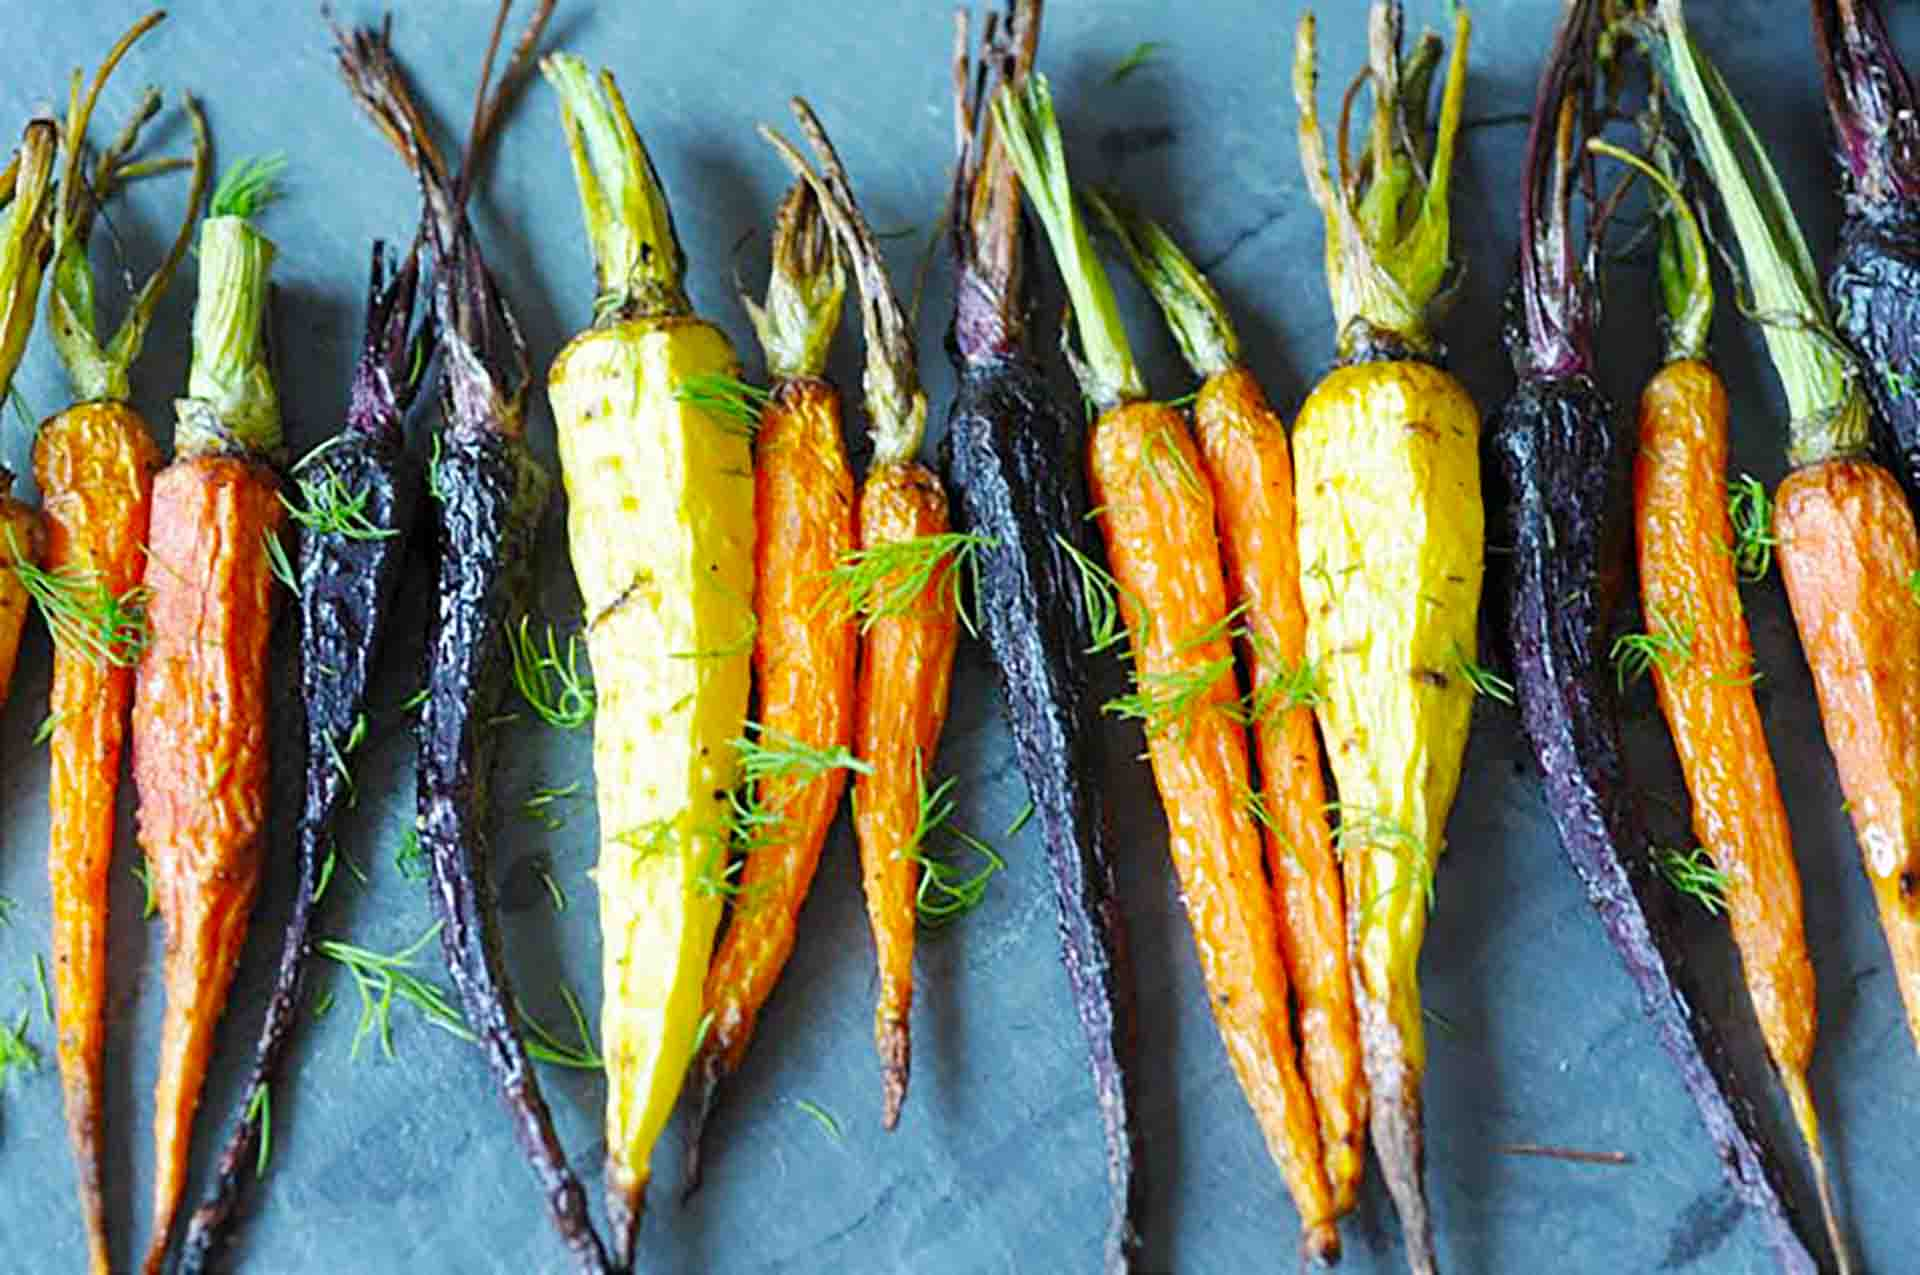 A tray of whole roasted colorful carrots.